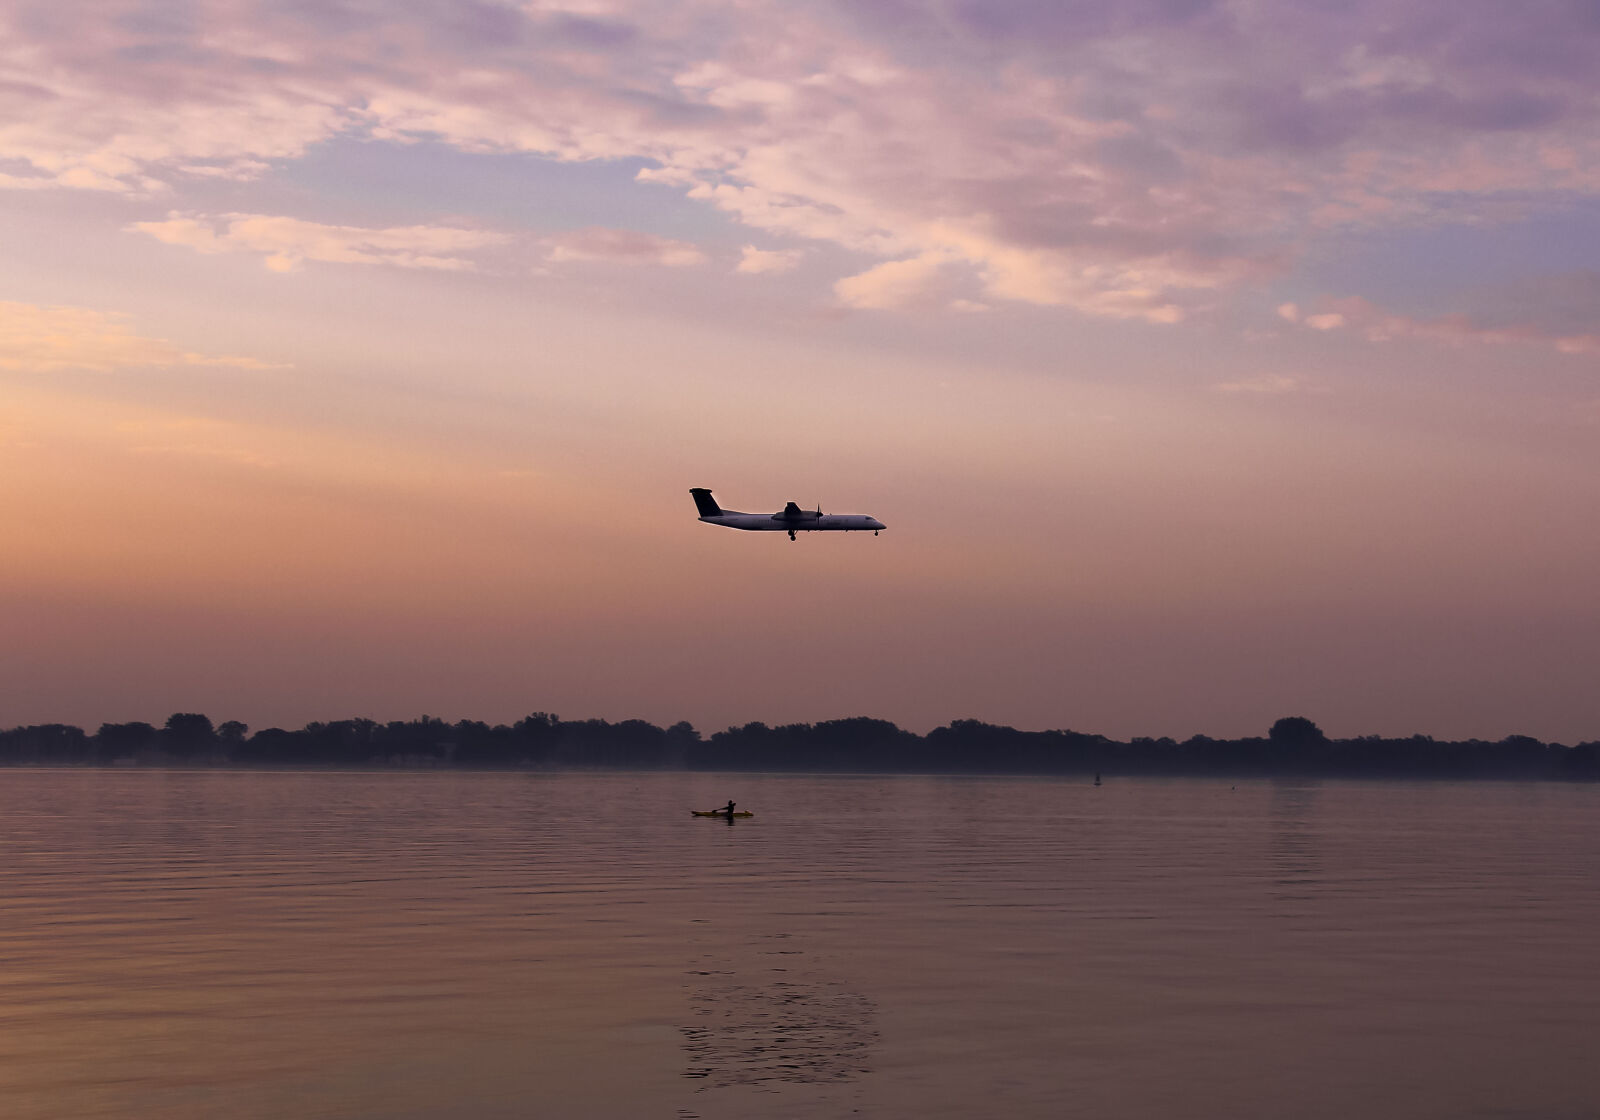 """Canon EOS 60D sample photo. """"Flying, island, airport, kayak"""" photography"""